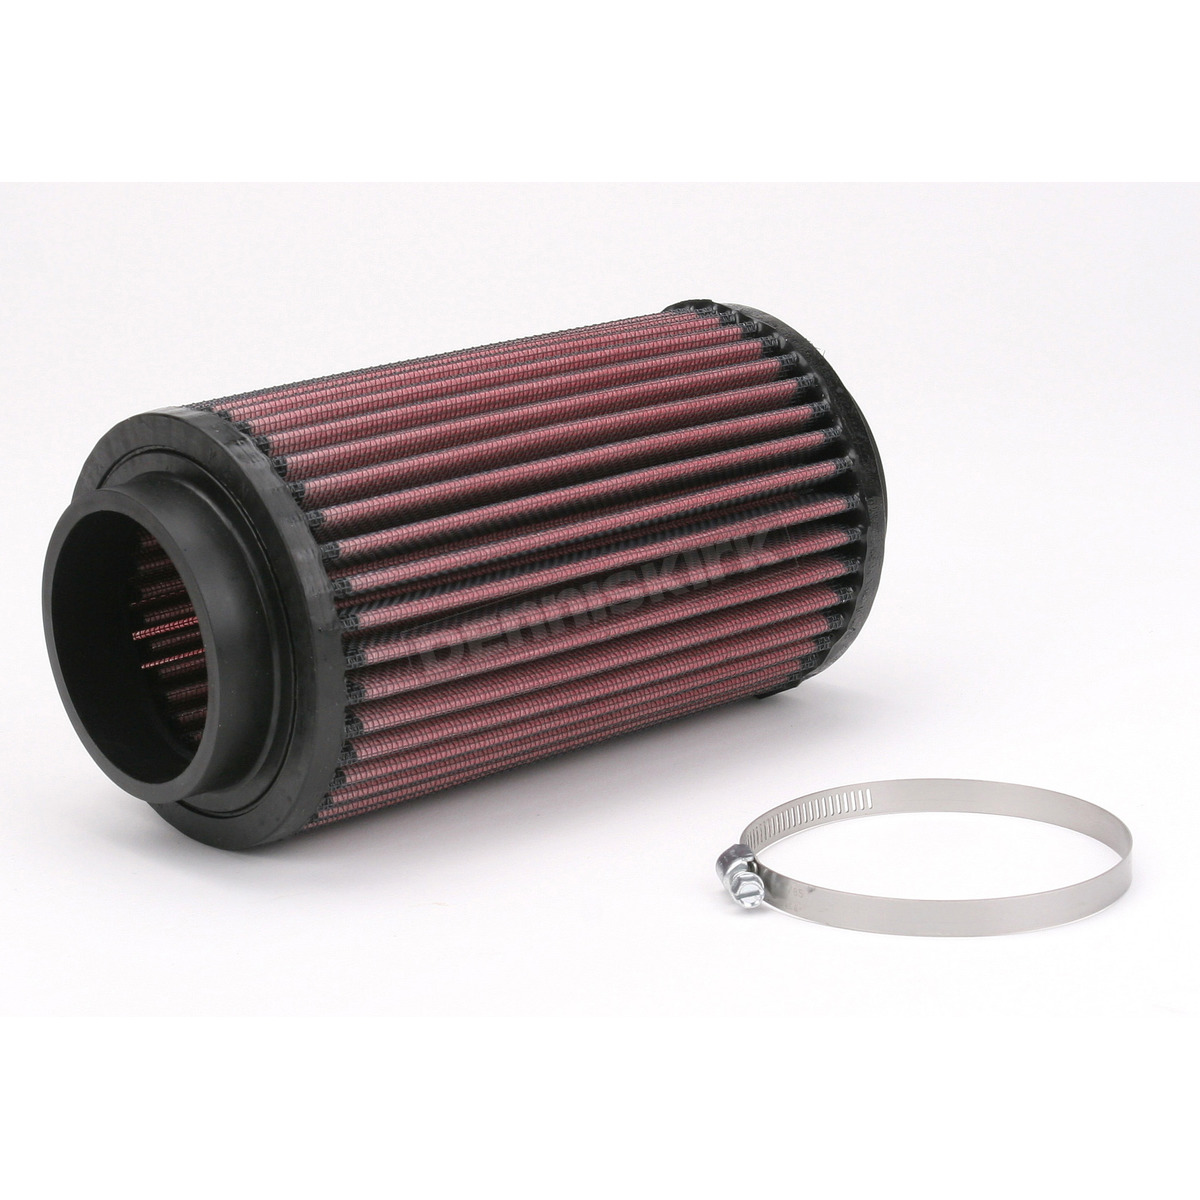 Air Filter For 2010 Polaris Sportsman 500 HO ATV~K/&N PL-1003